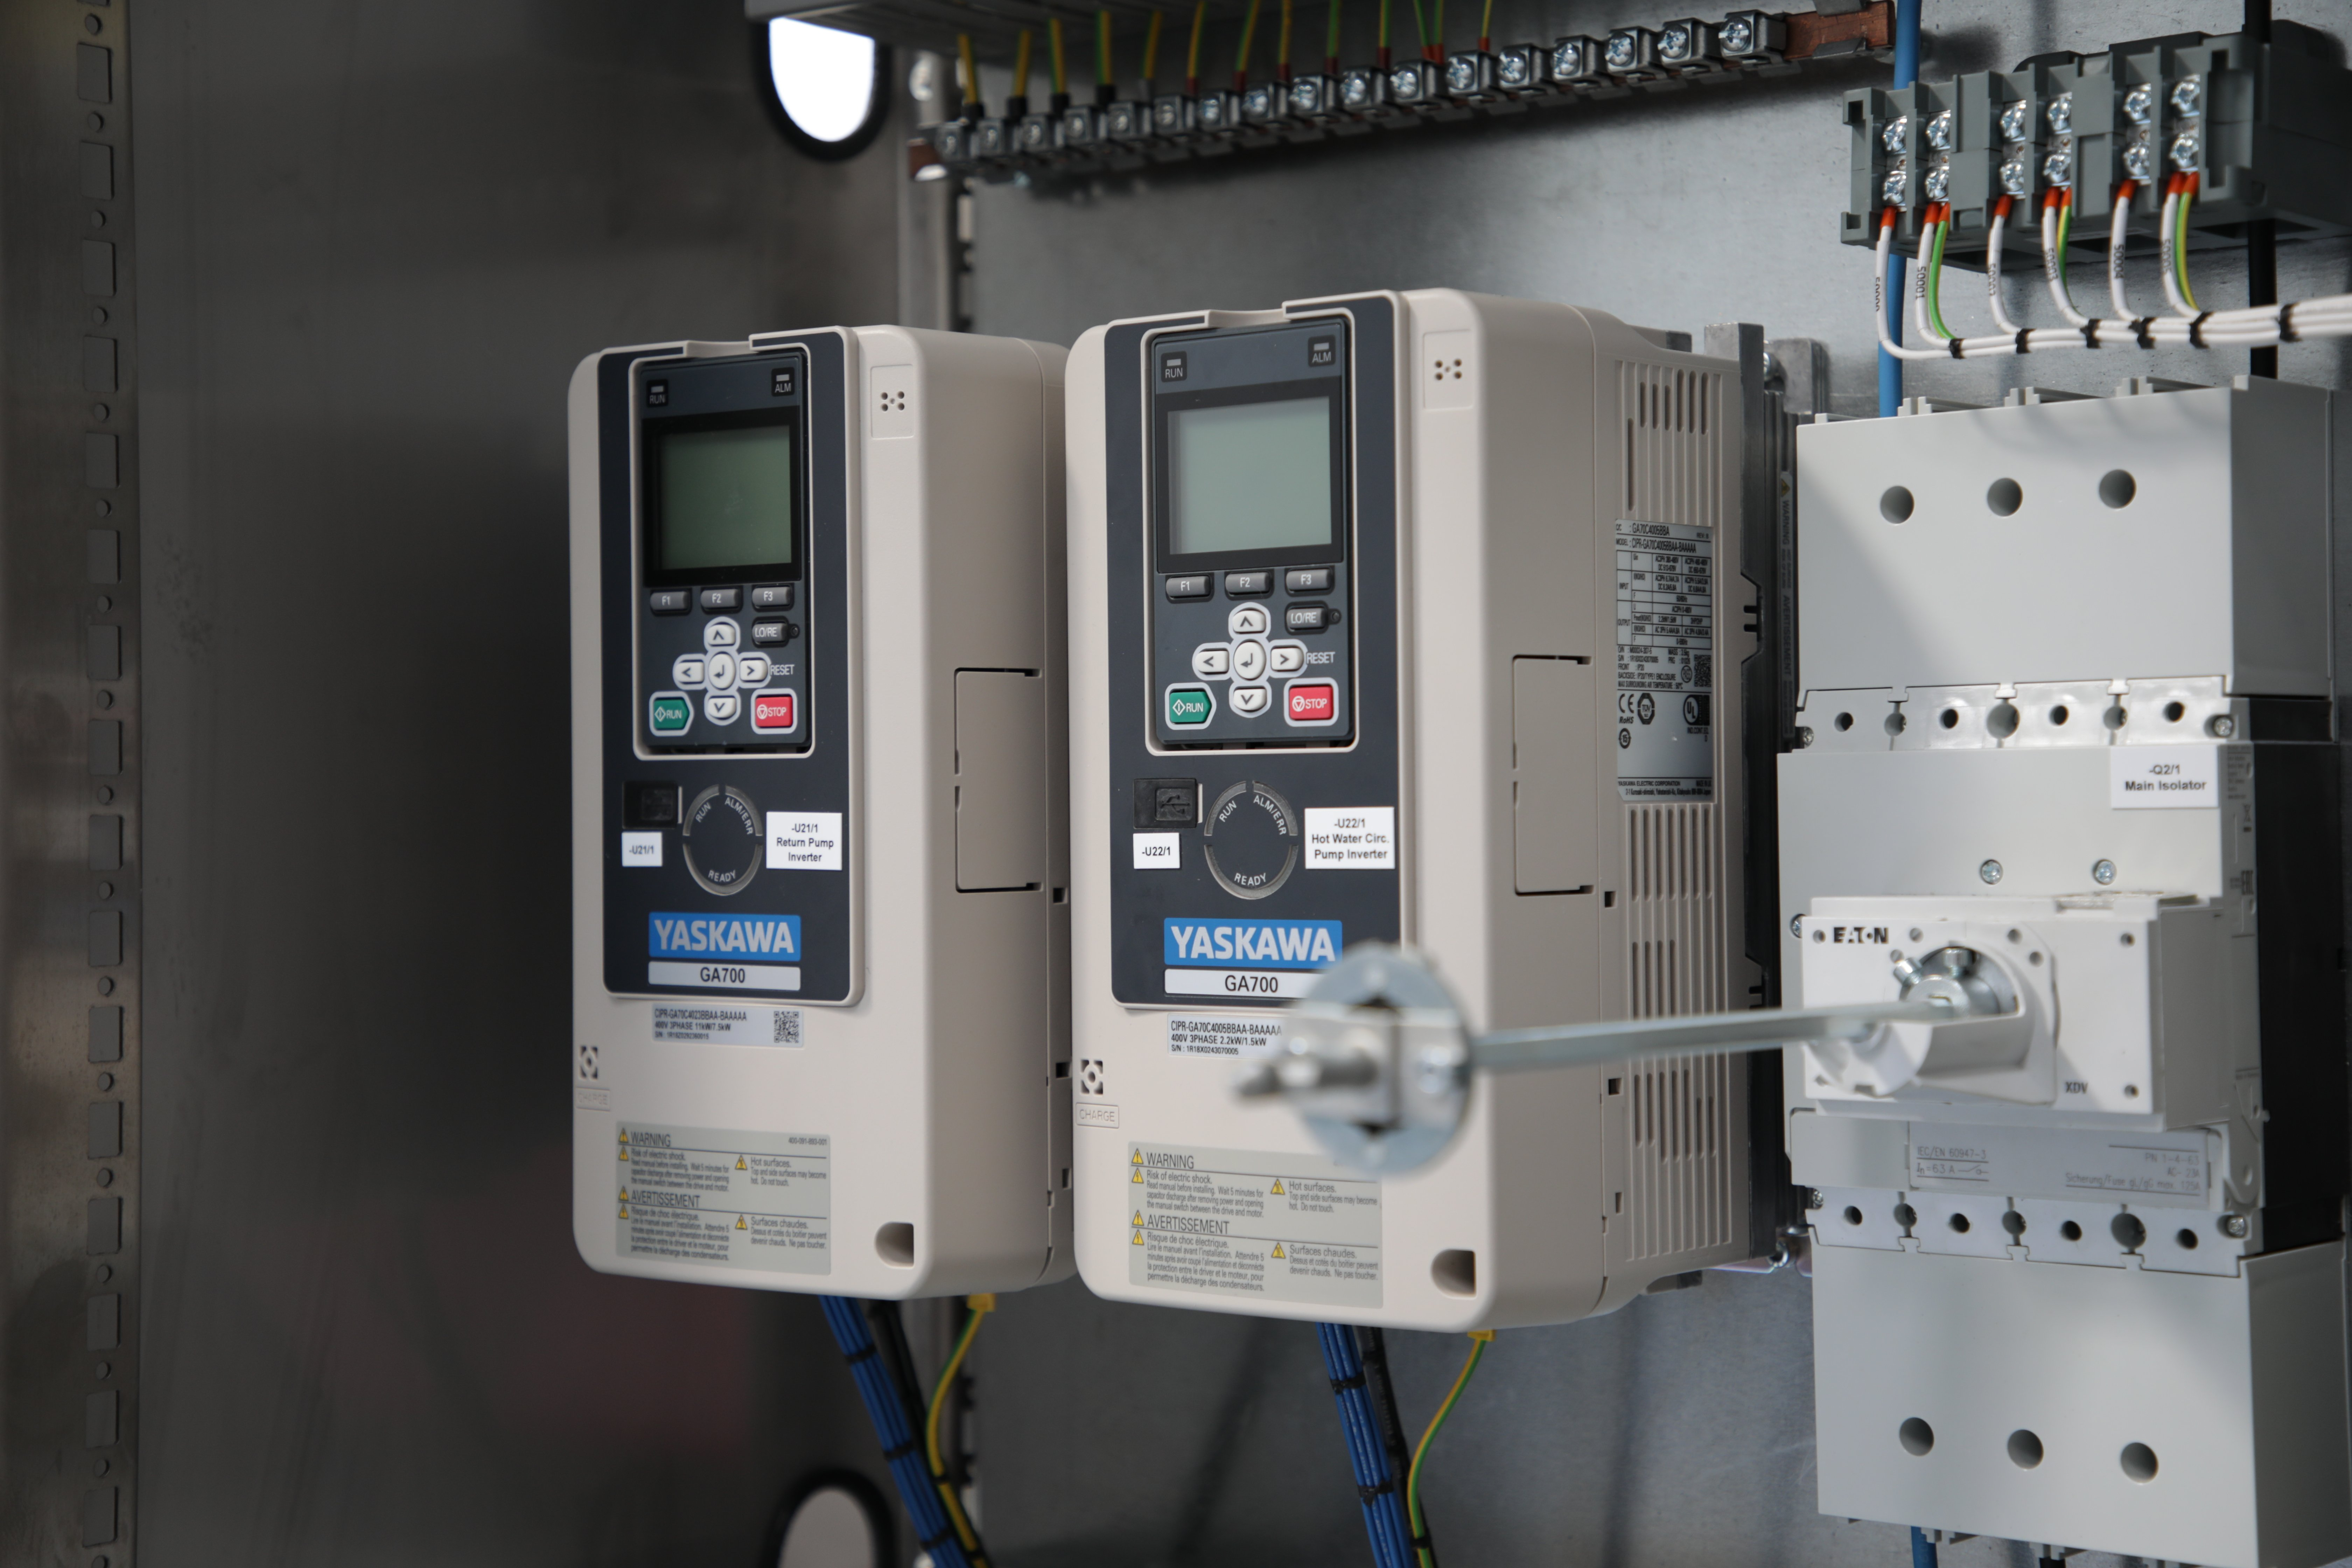 PLC Controller in Electrical Panel